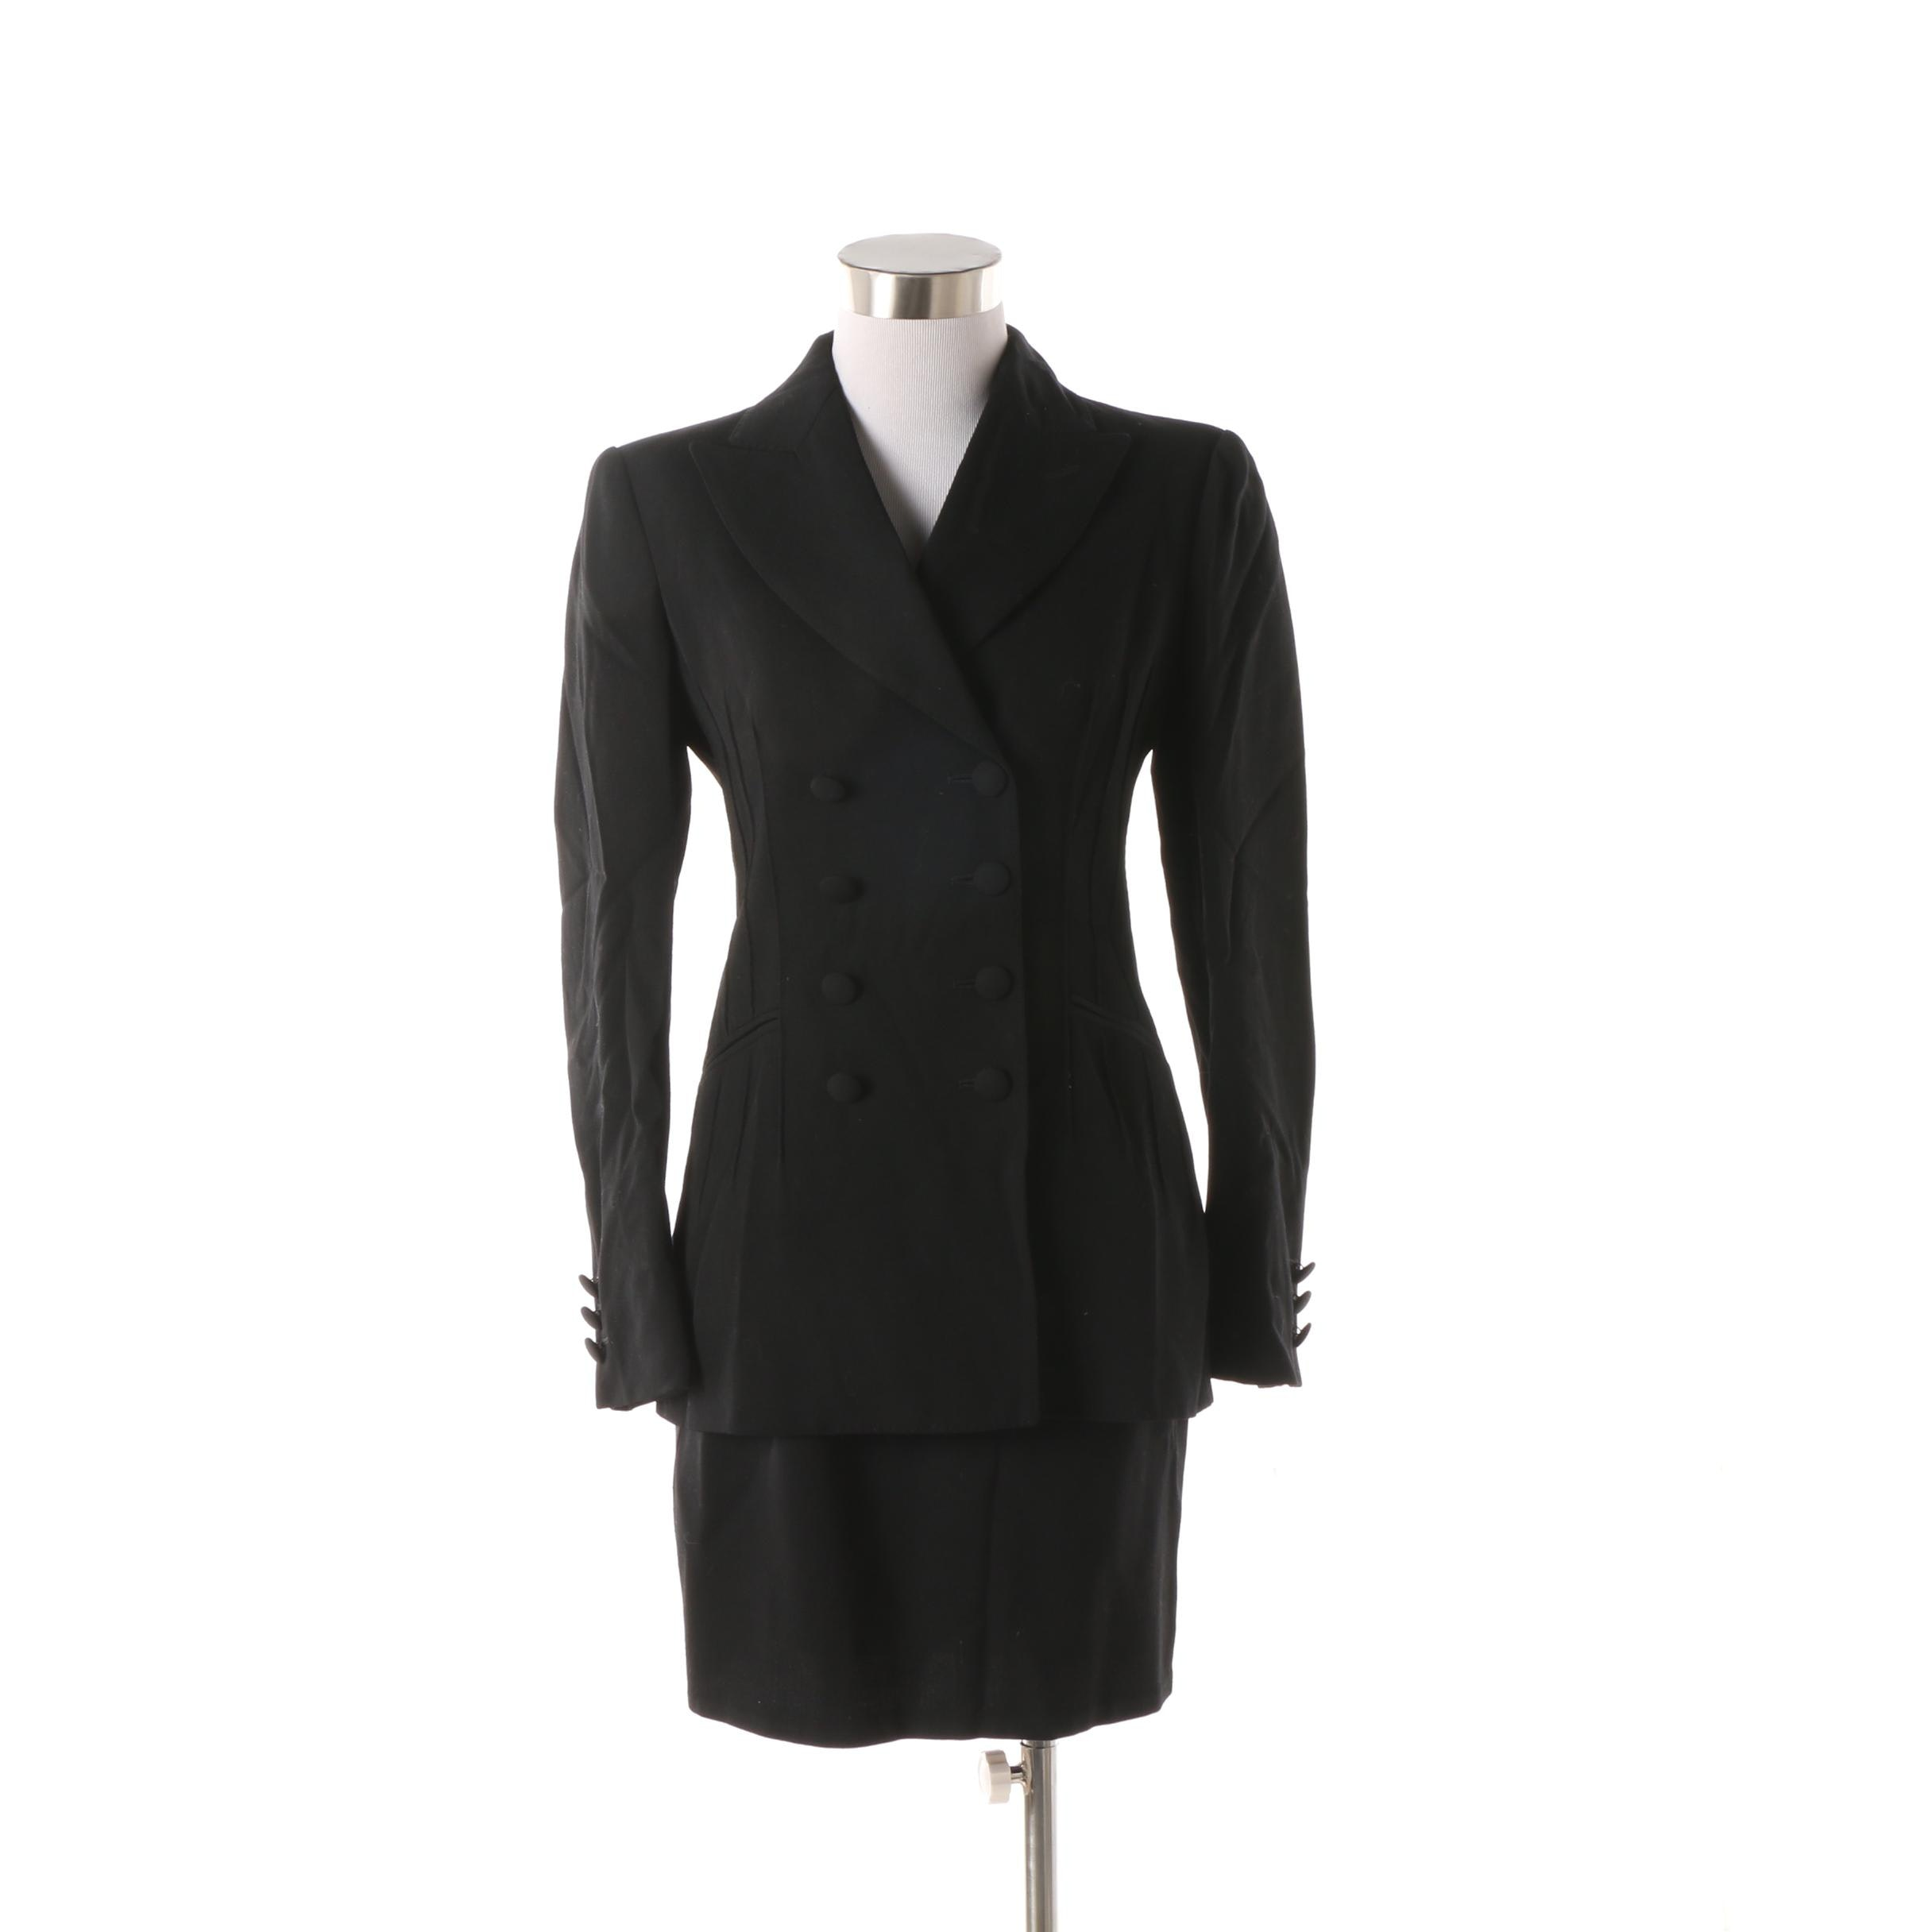 Women's 1980s Vintage Moschino Couture! Black Wool Skirt Suit